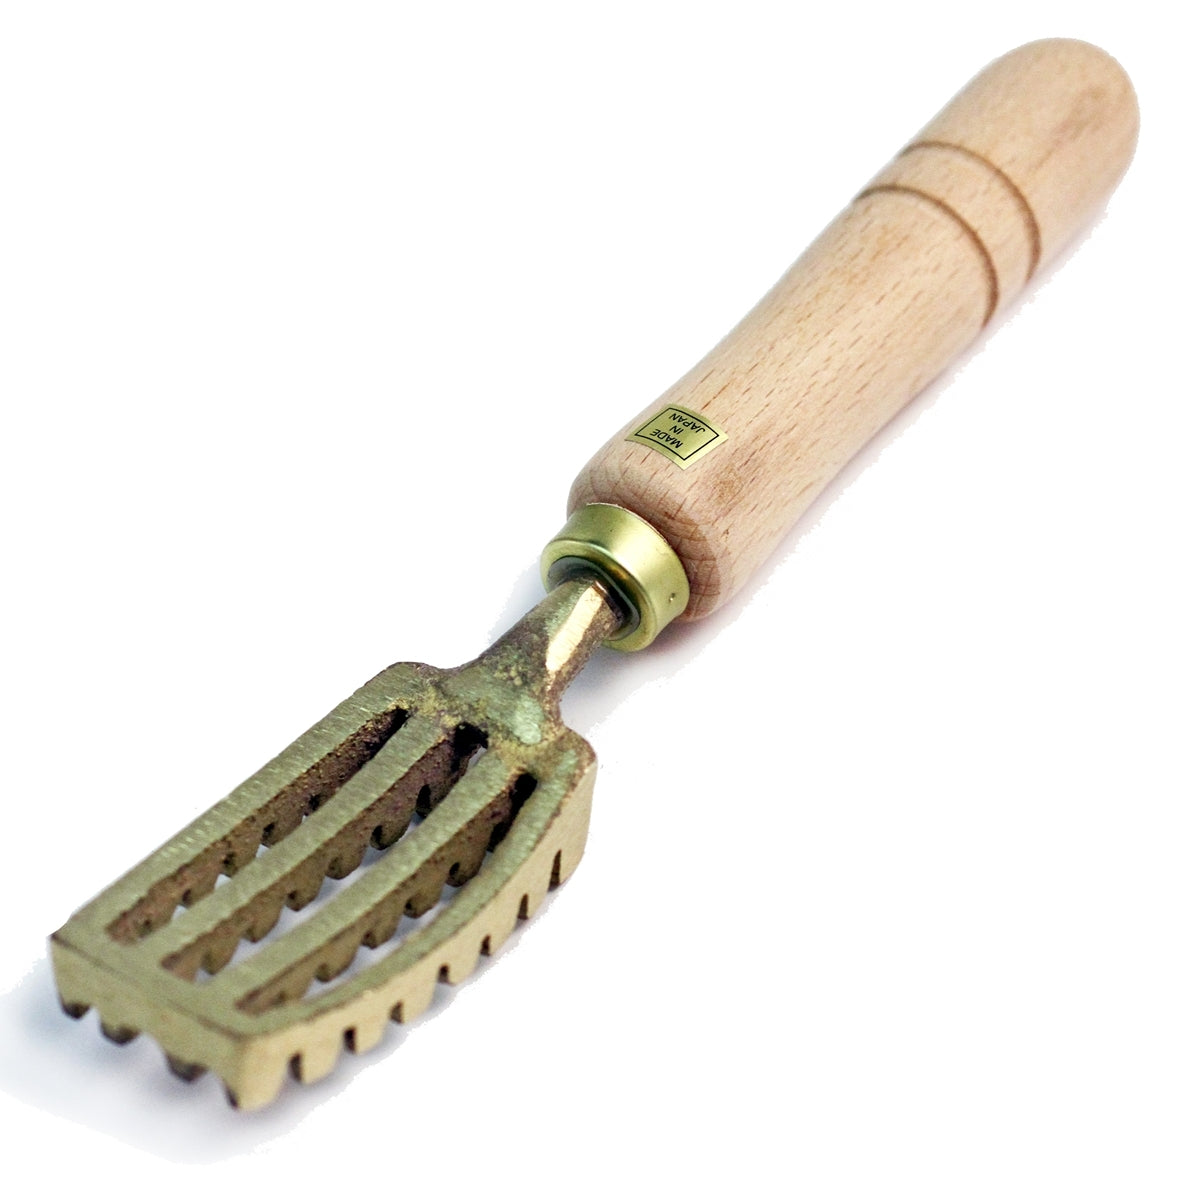 Brass Fish Scaler 210mm w/ Wooden Handle